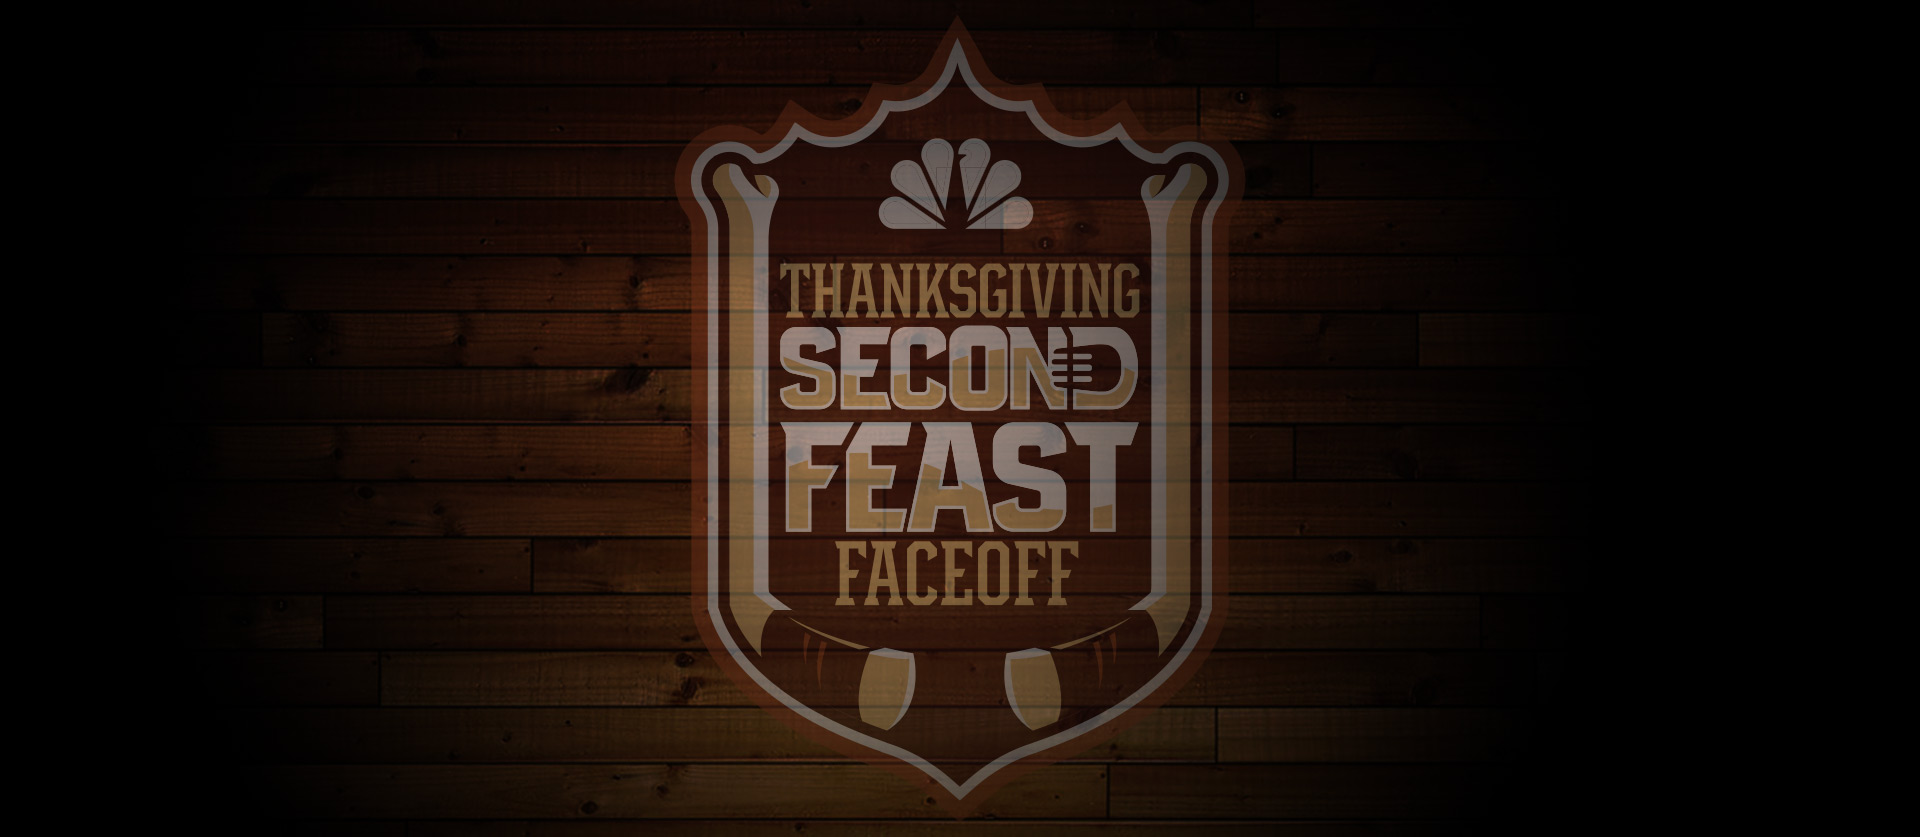 NBC Sports Second Feast Face-off - Full Project Details